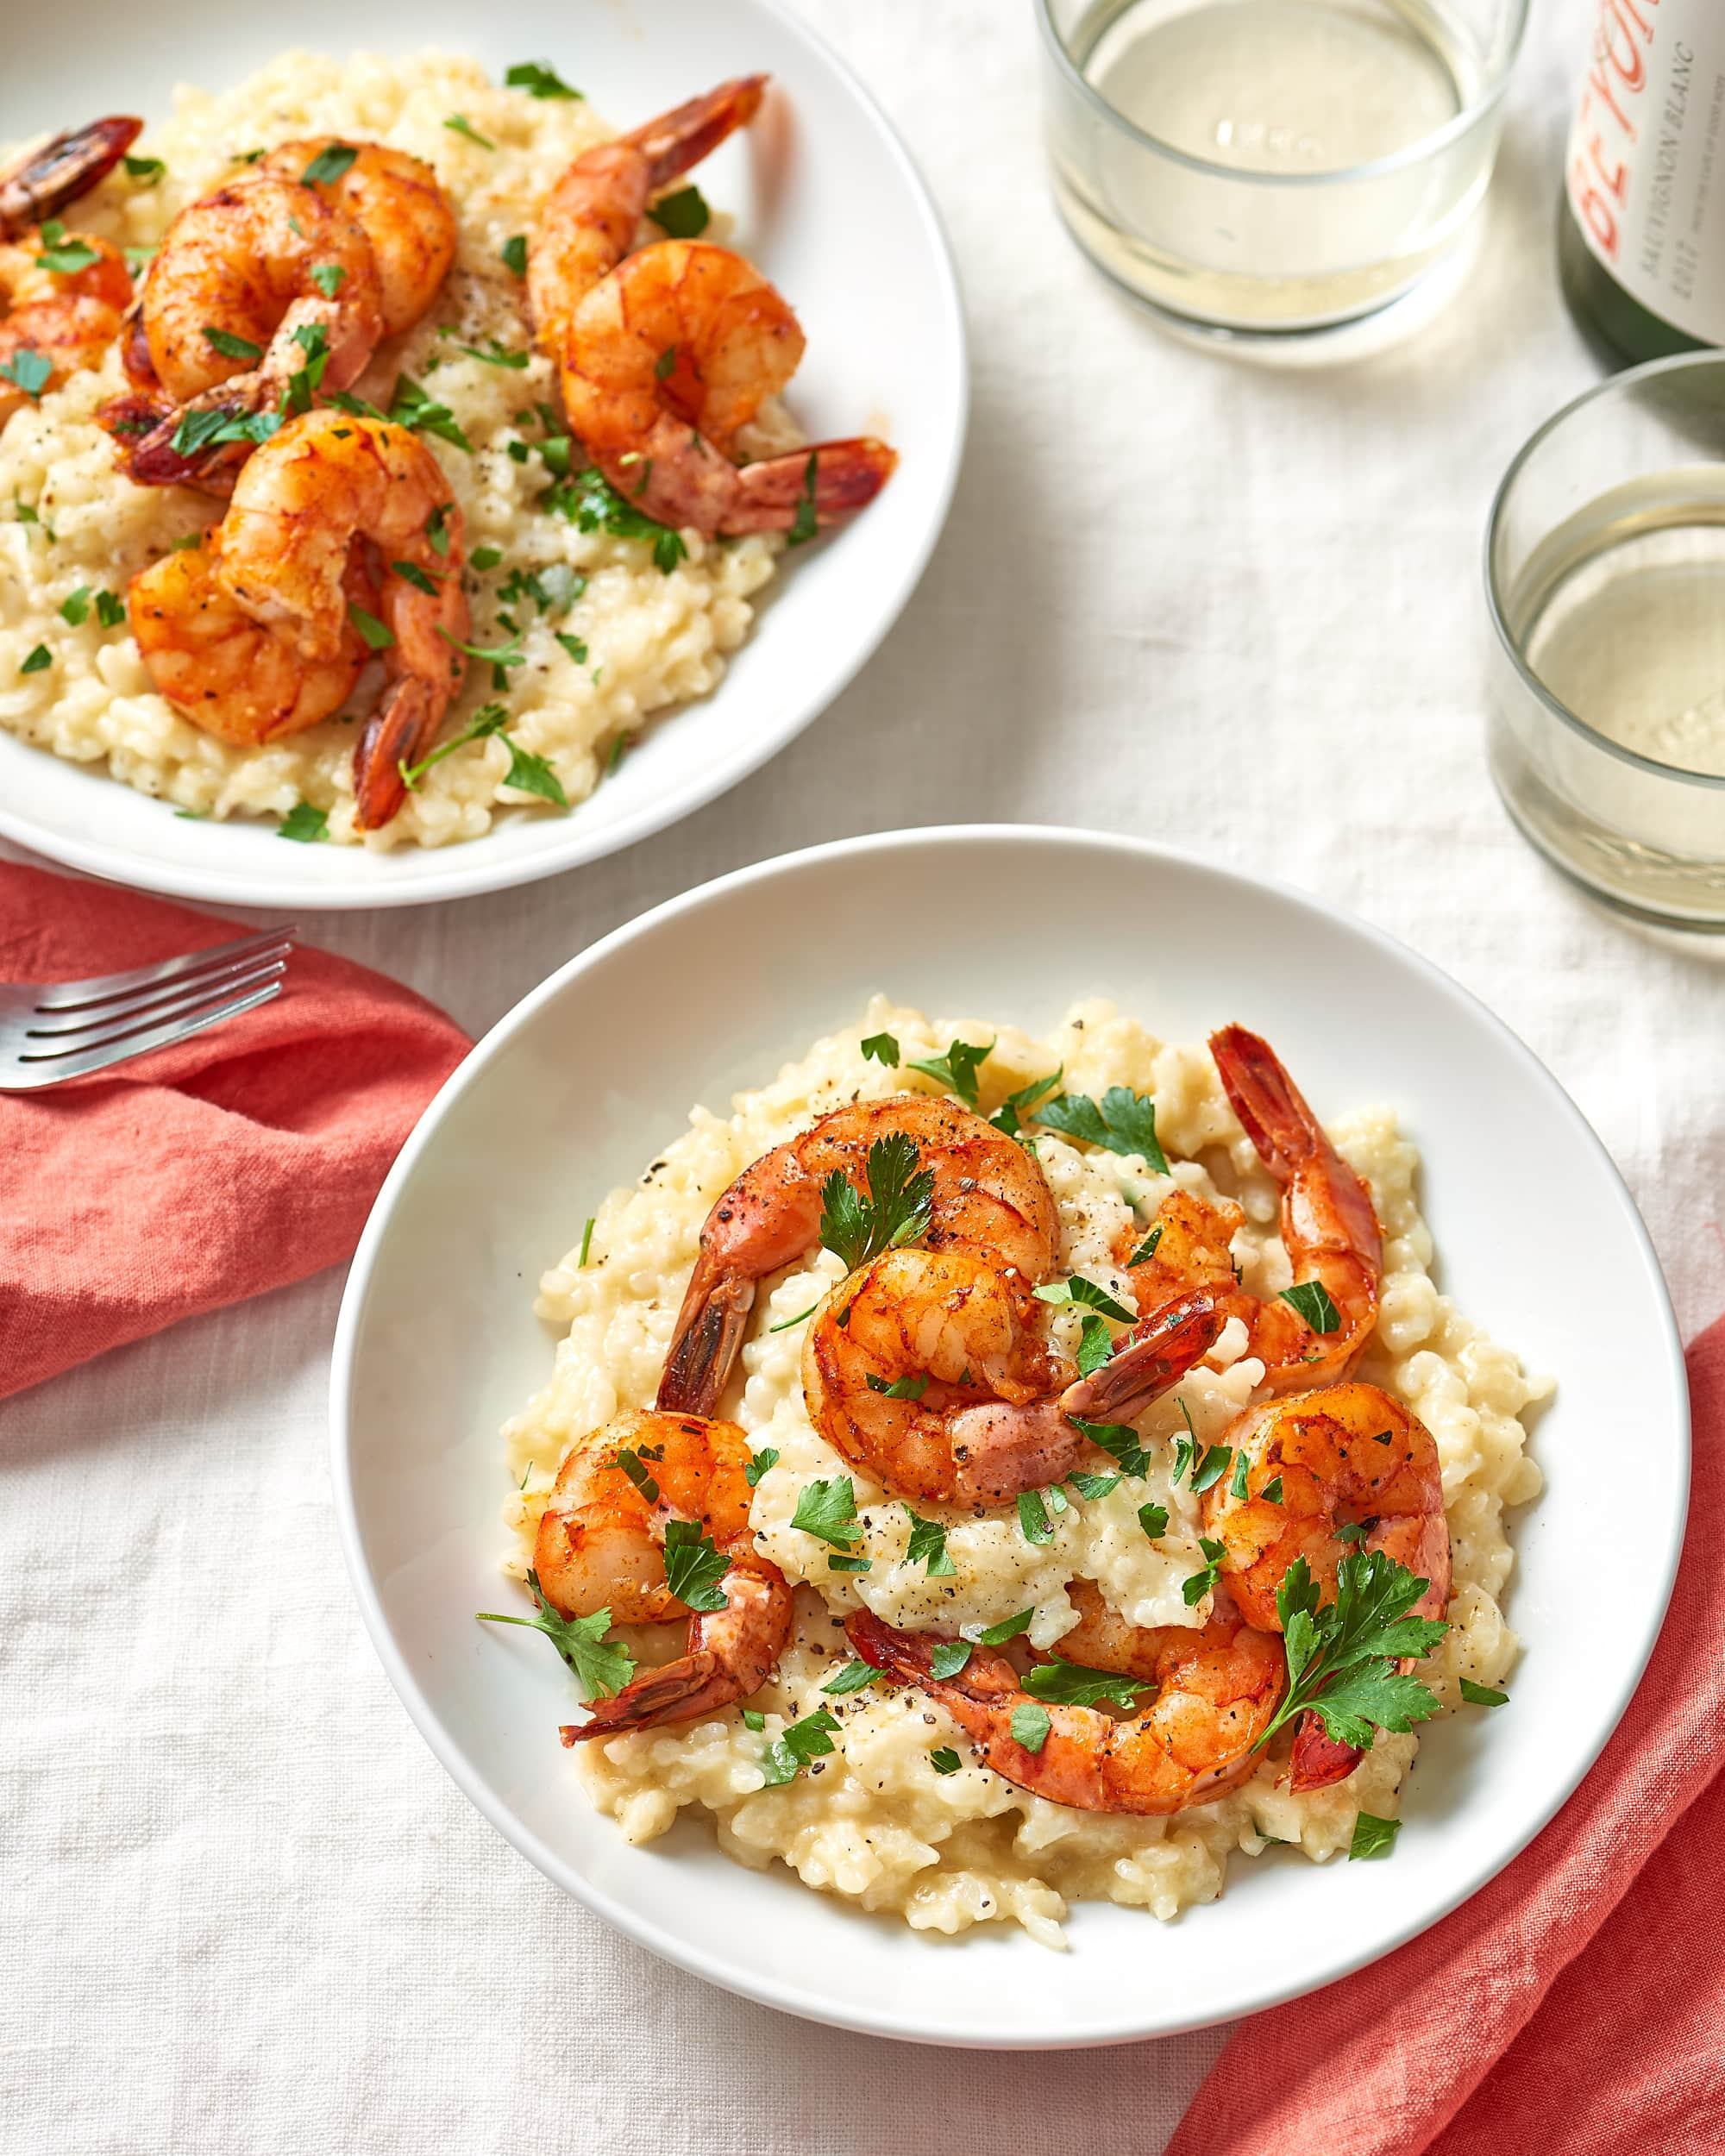 Romantic Dinner Ideas - Best Meals For Two At Home